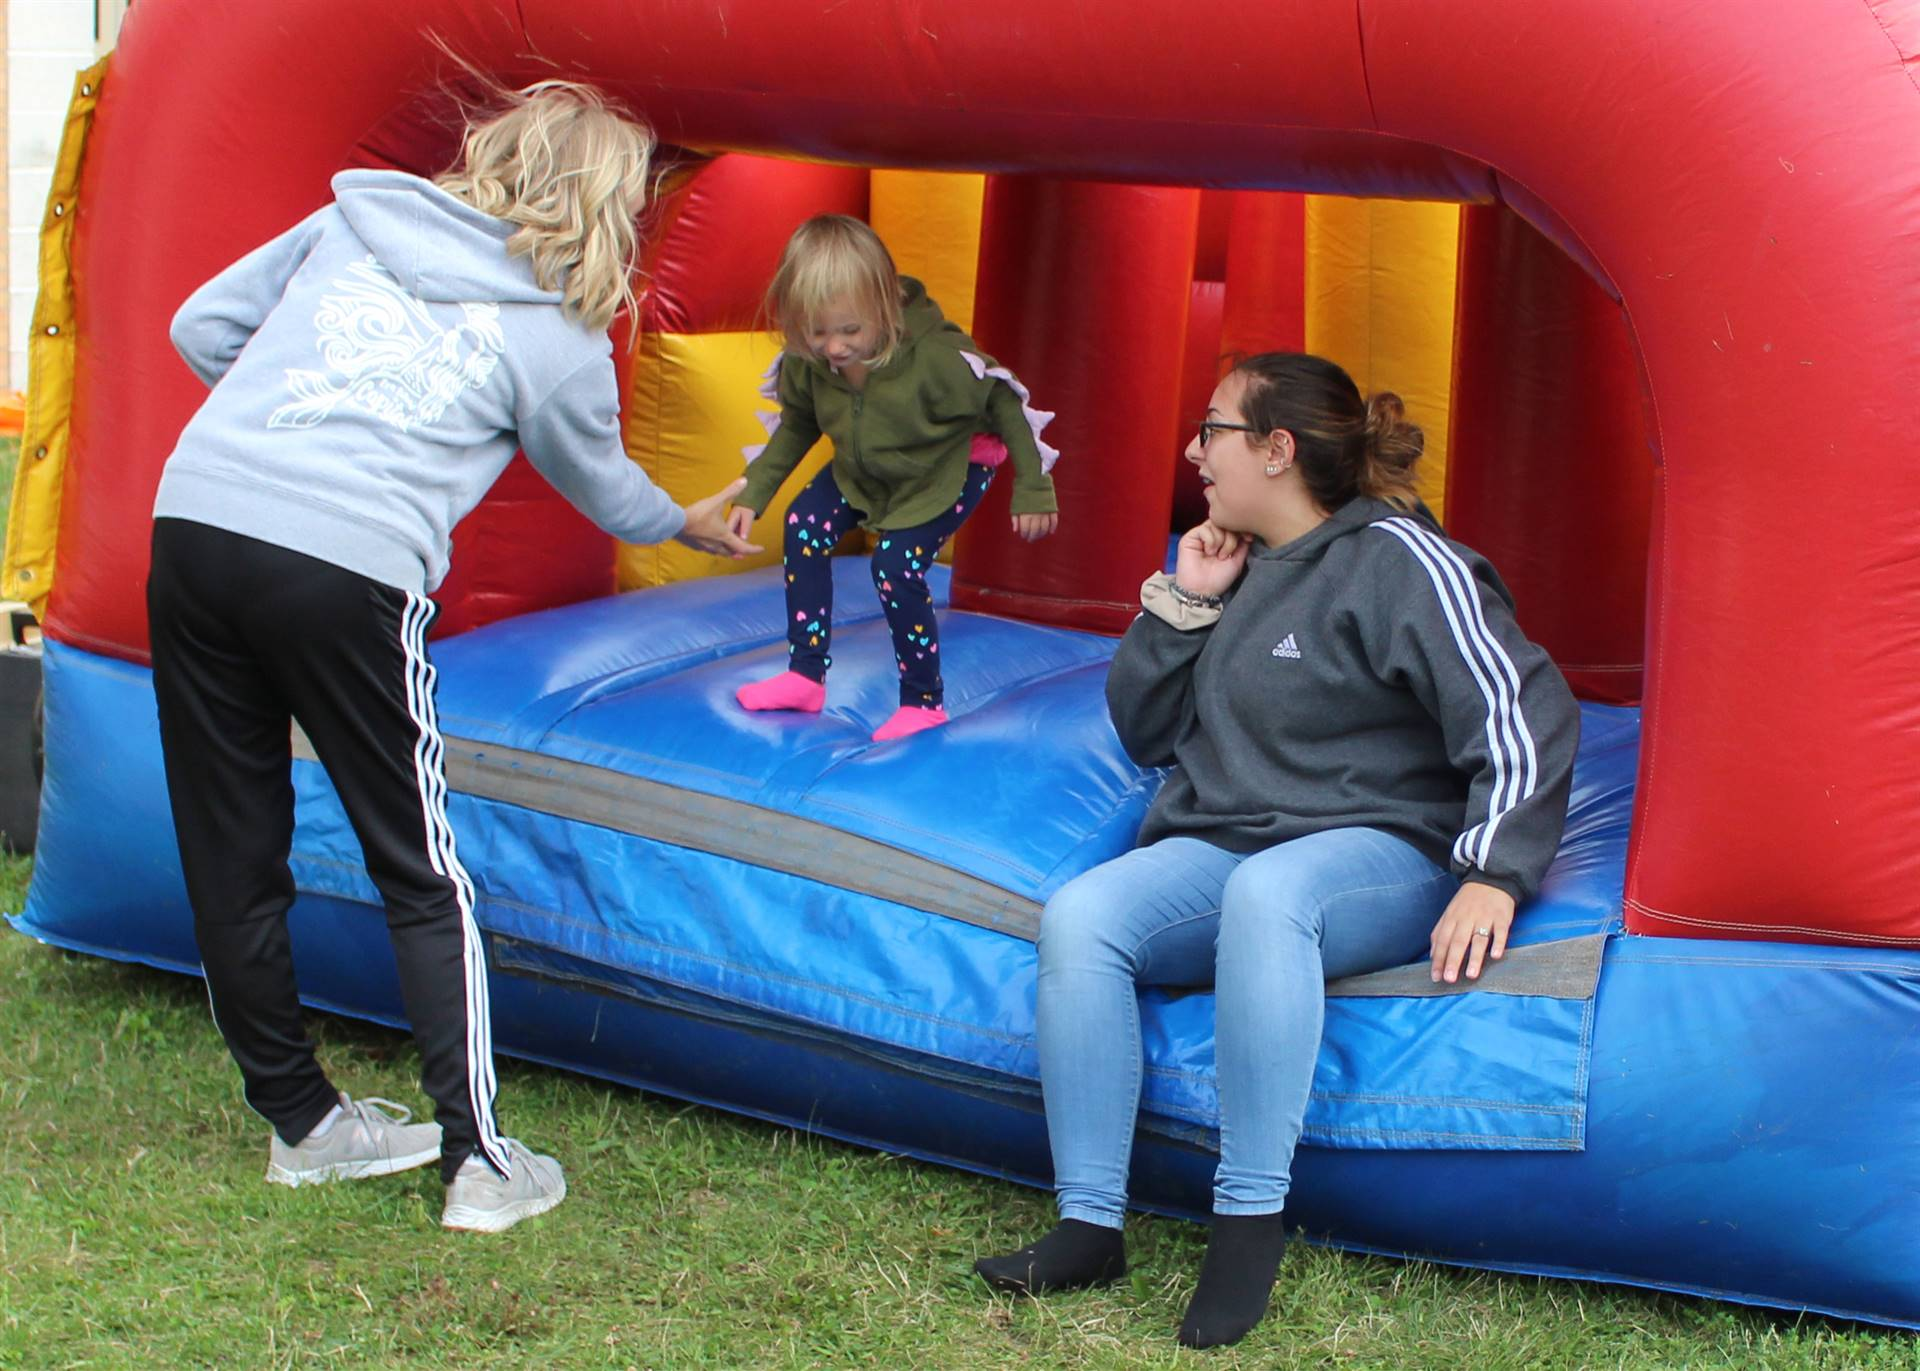 Two older students help a younger one navigate the bounce house